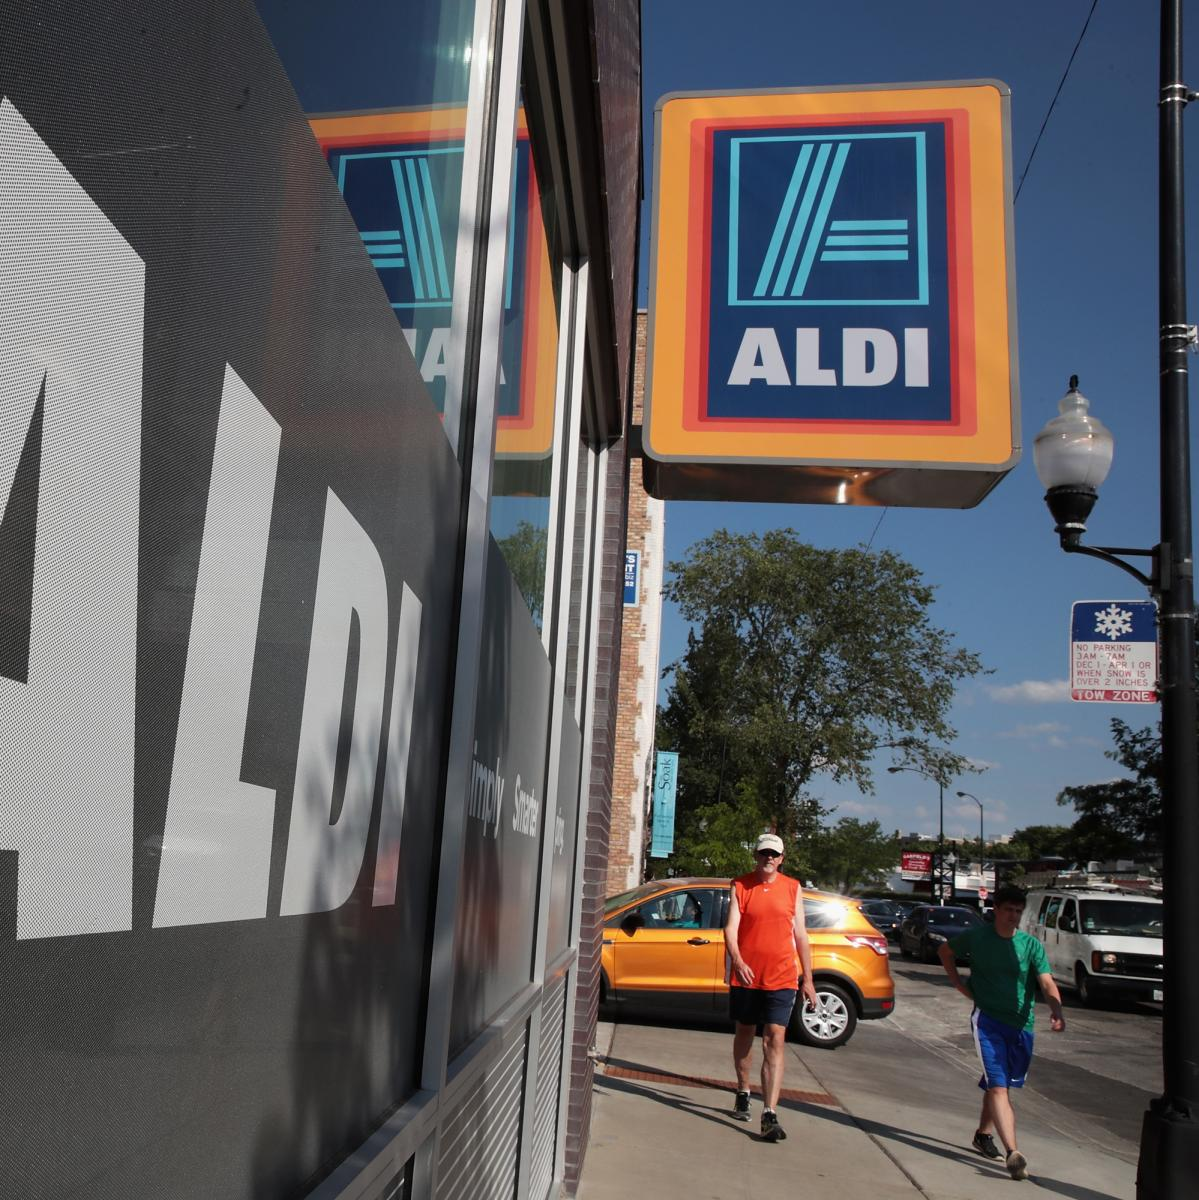 There is some seriously good stuff on sale at Aldi this weekend